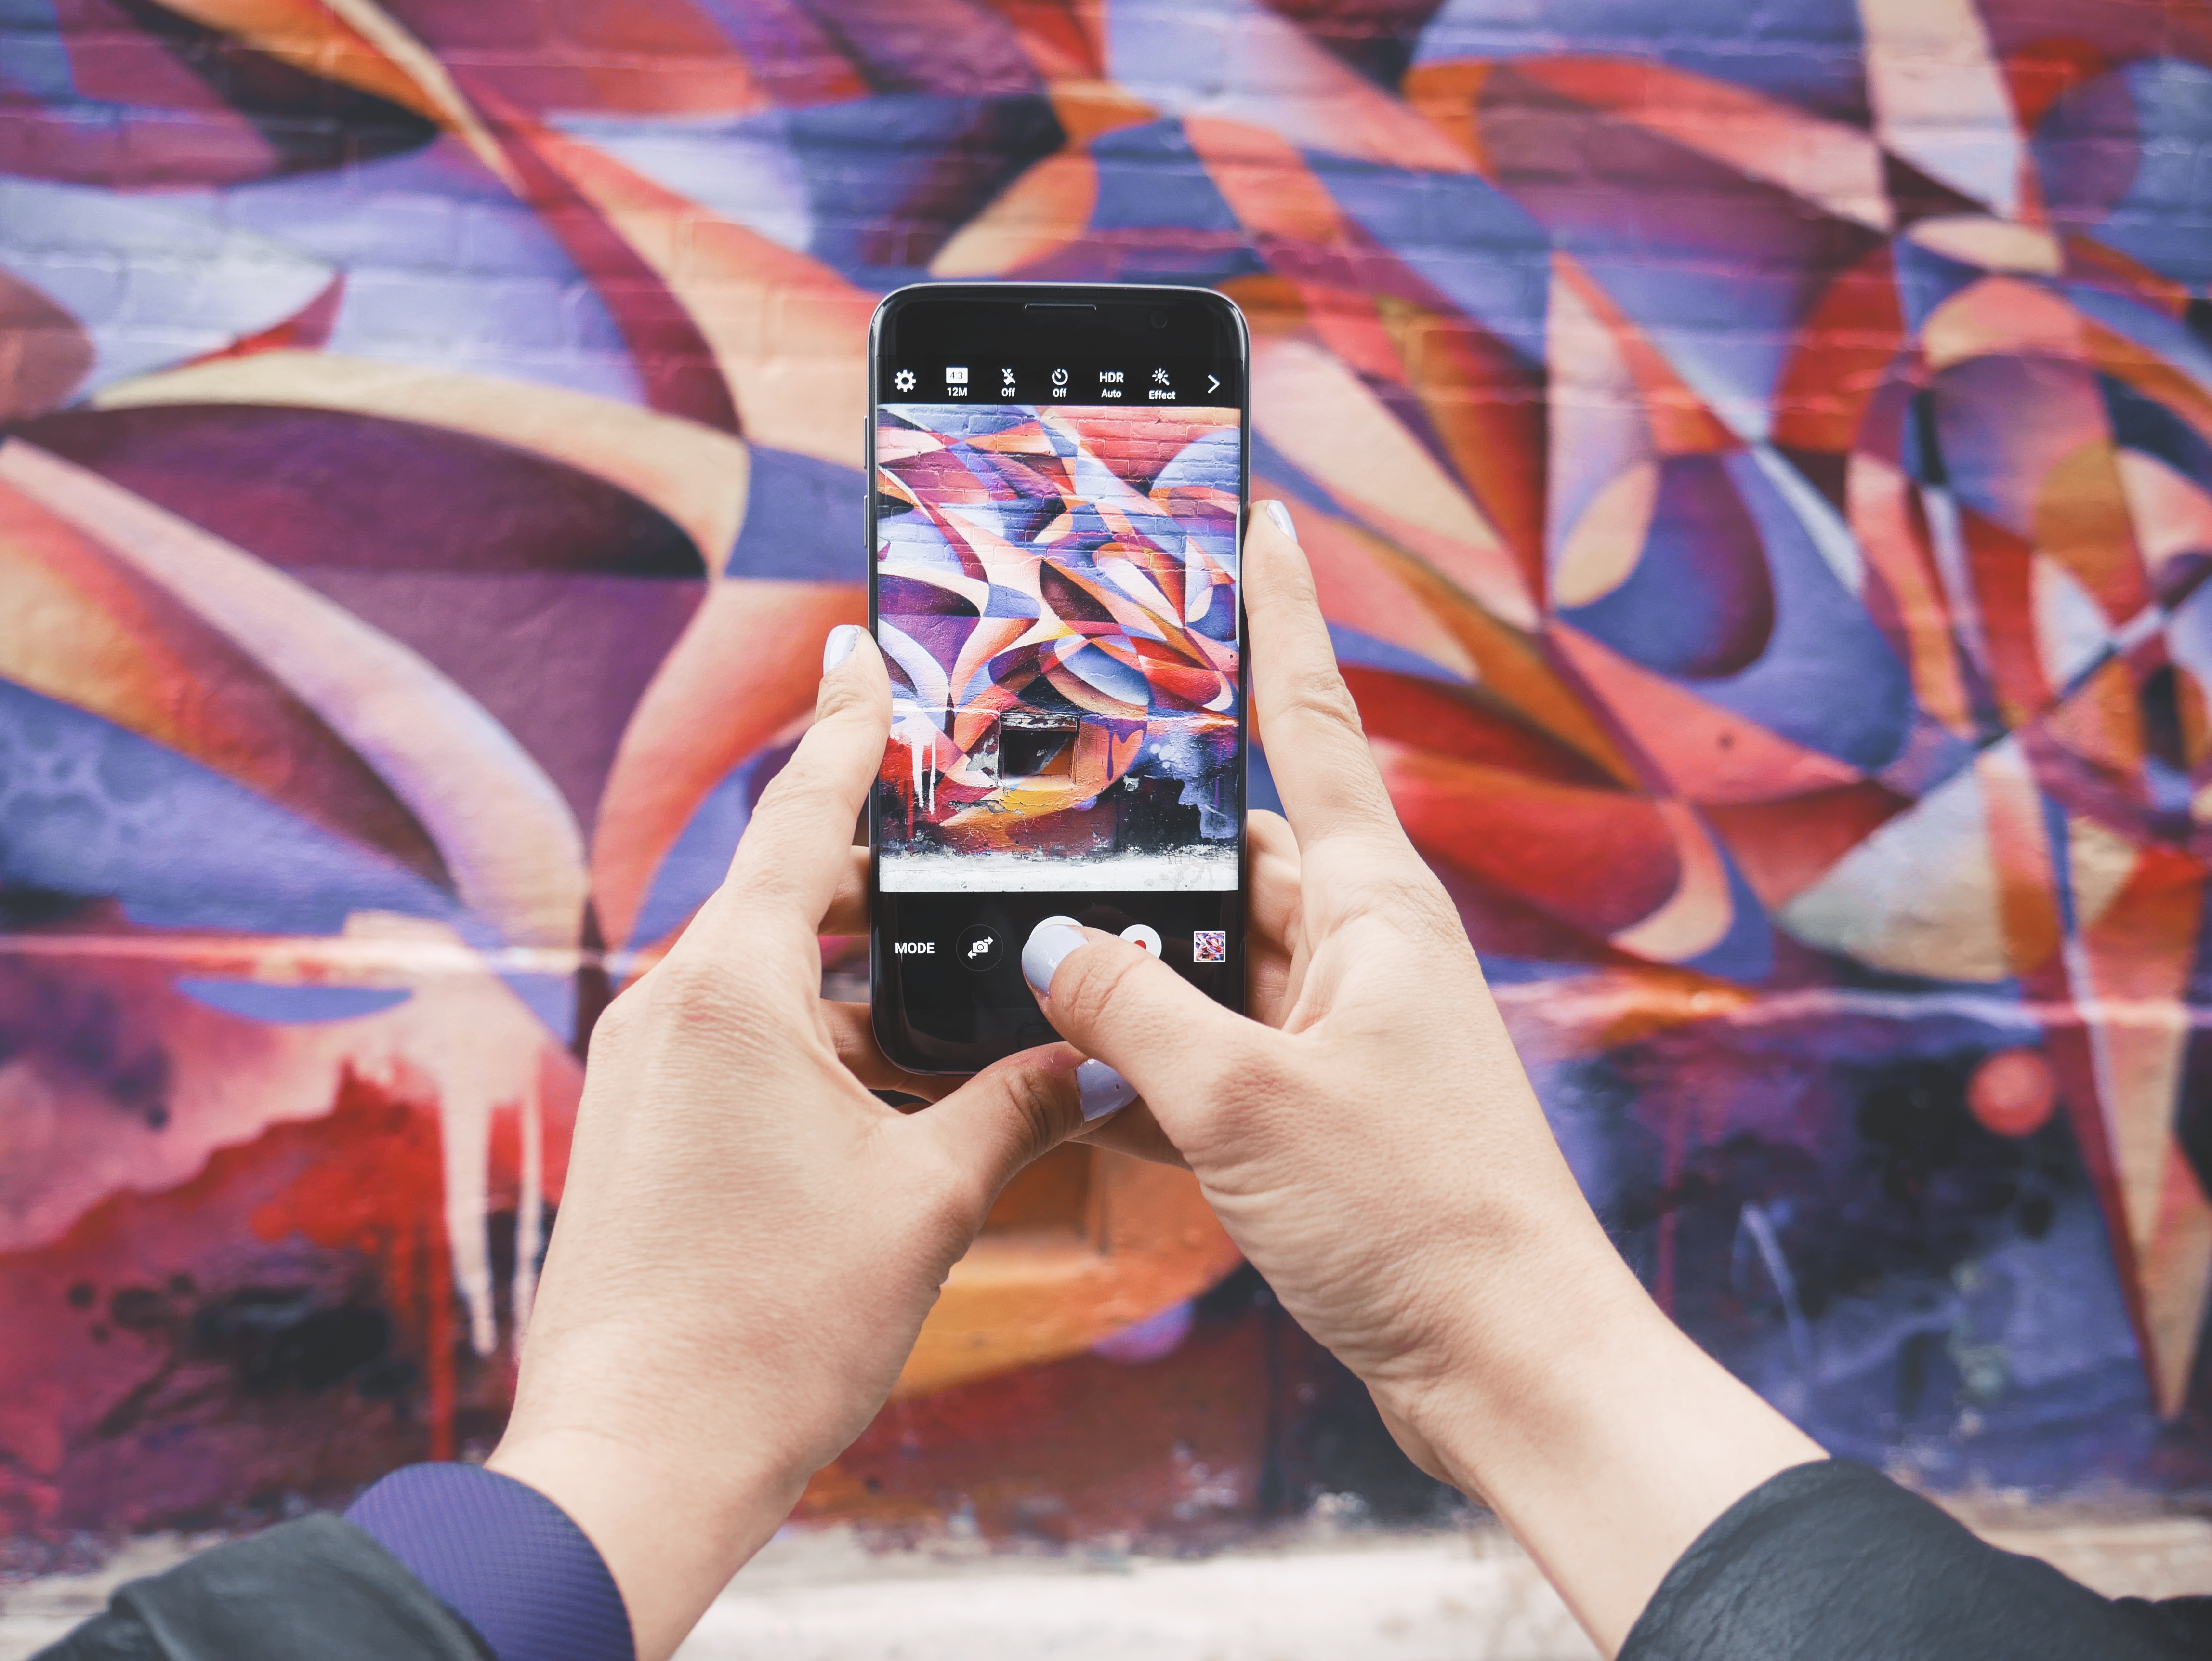 Taking a picture of graffiti with a smartphone for social media marketing